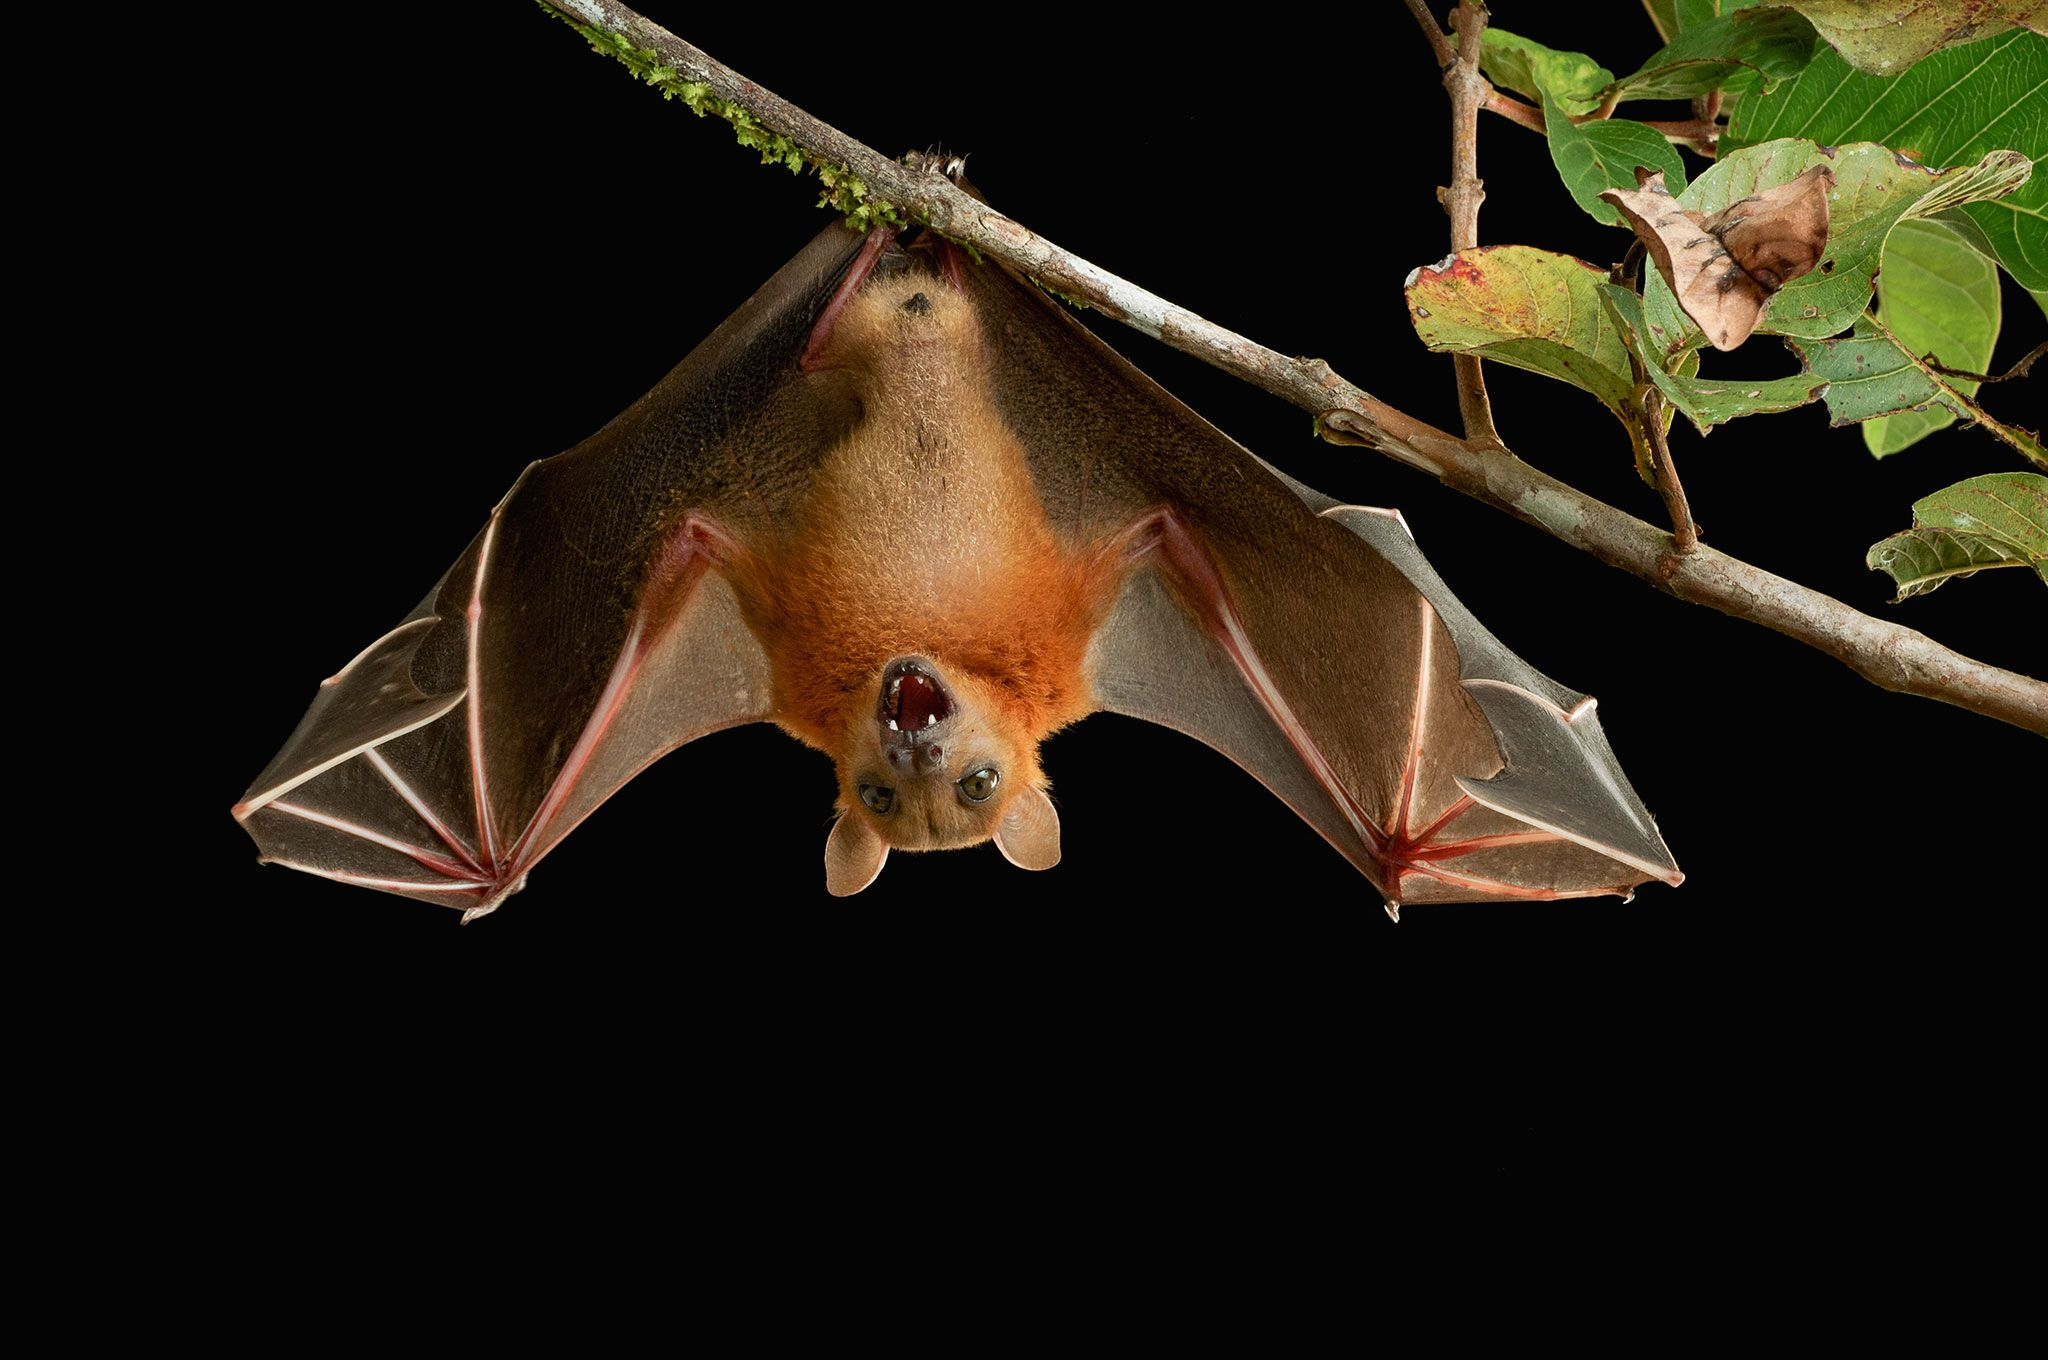 Mystery Solved How Bats Can Land Upside Down コウモリ ボルネオ島 動物学